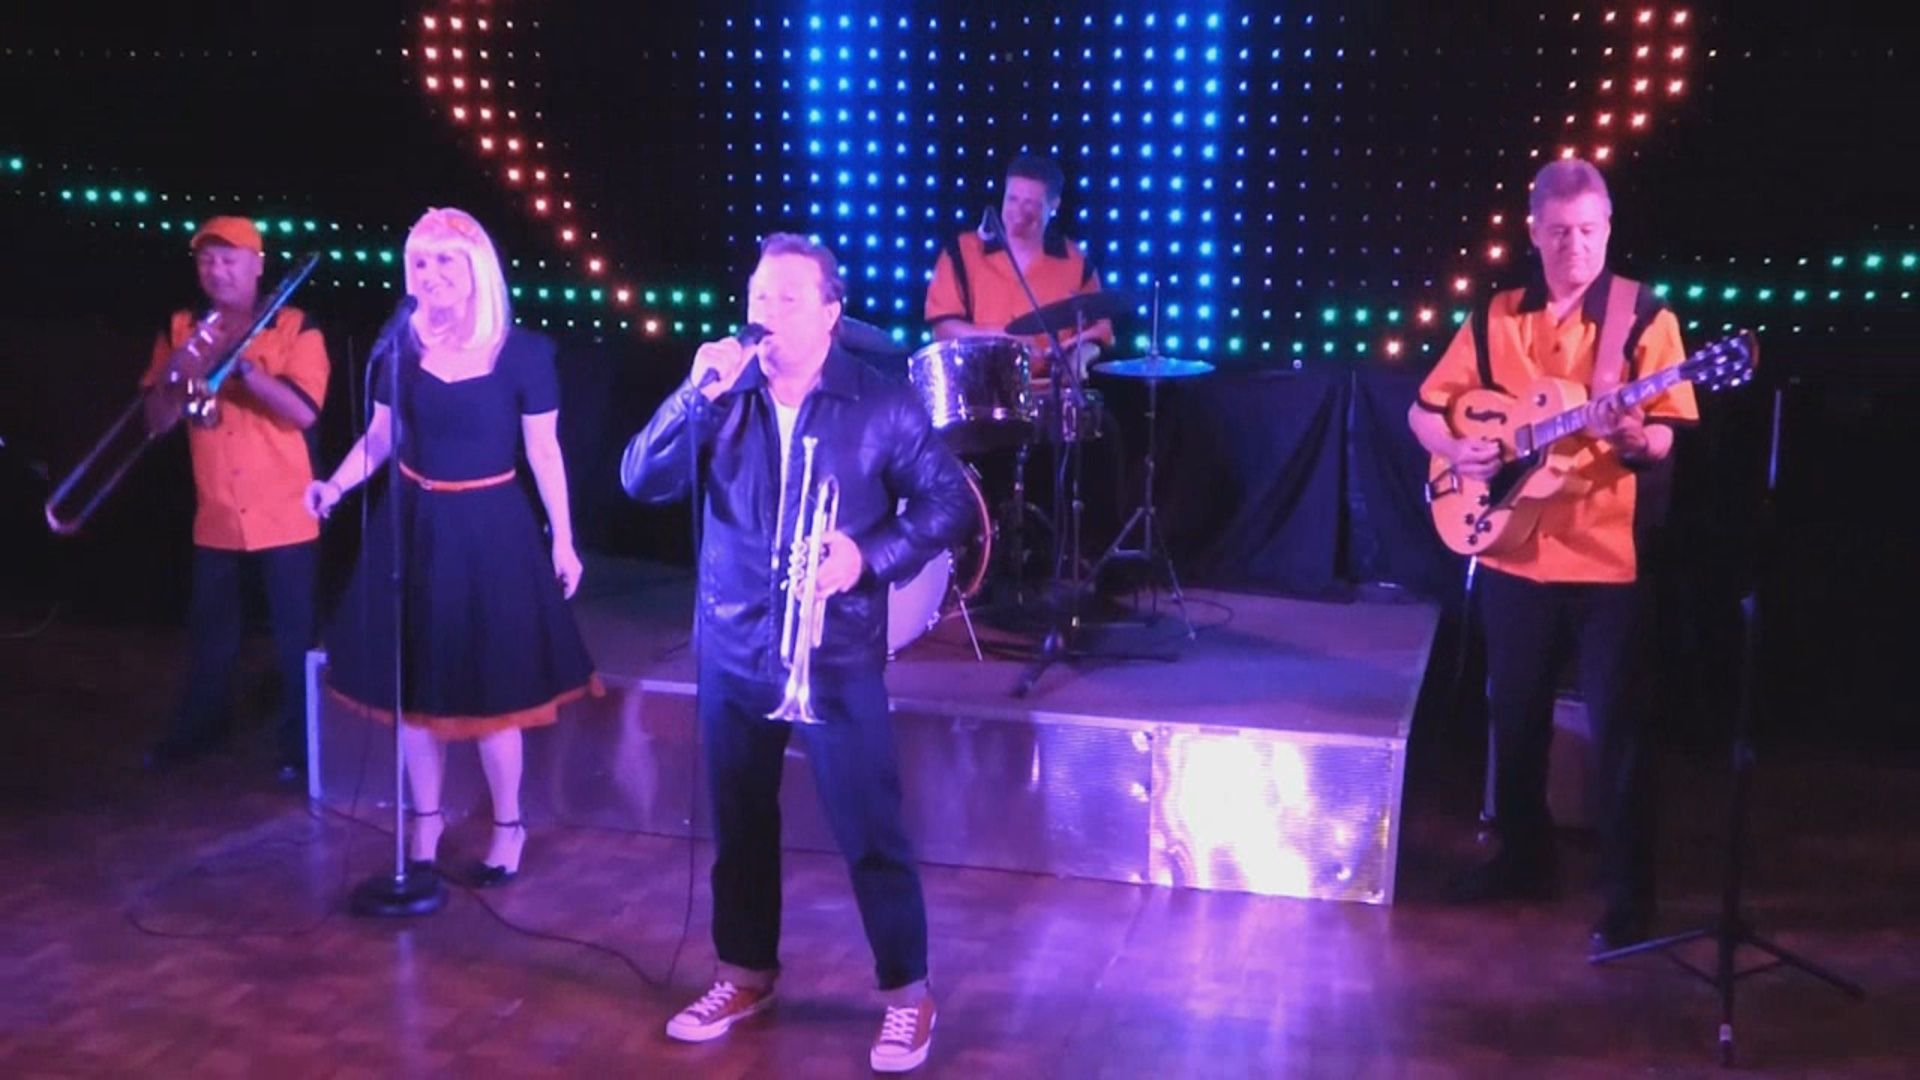 Throwback Decades Band performs music and costuming from the